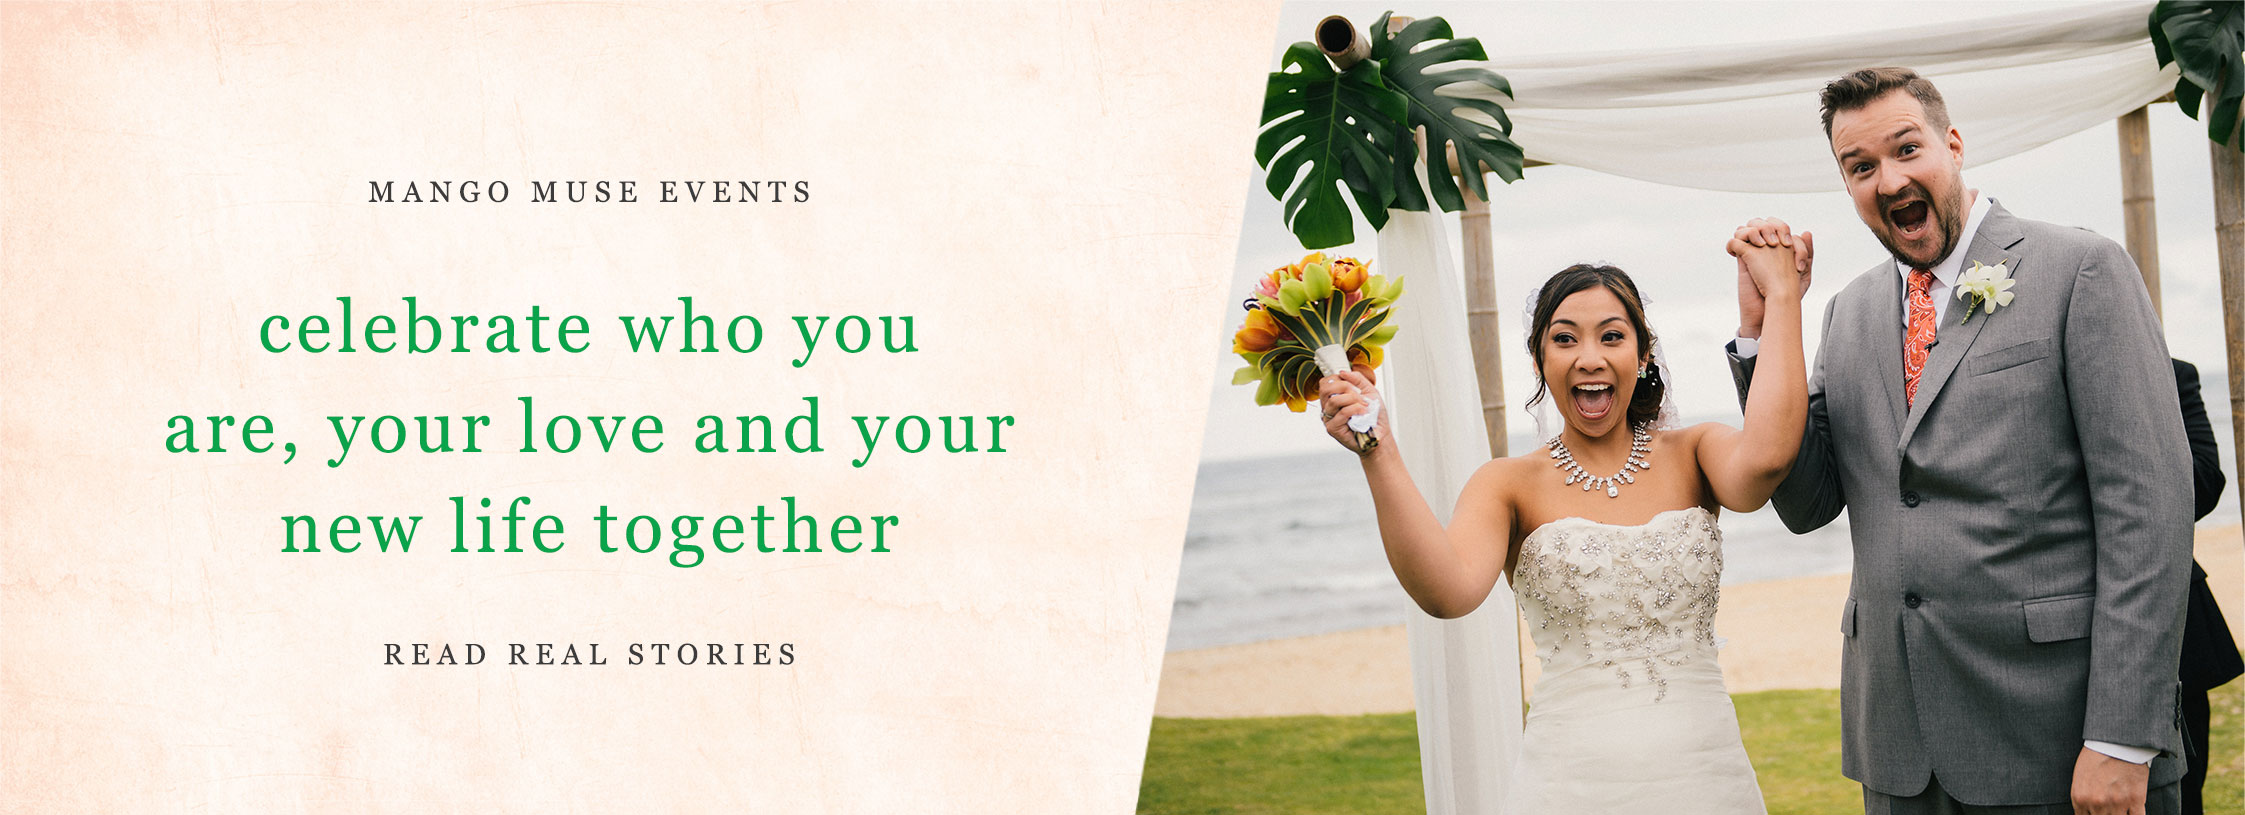 Bride and groom just married wedding ceremony in Hawaii by Destination wedding planner Mango Muse Events